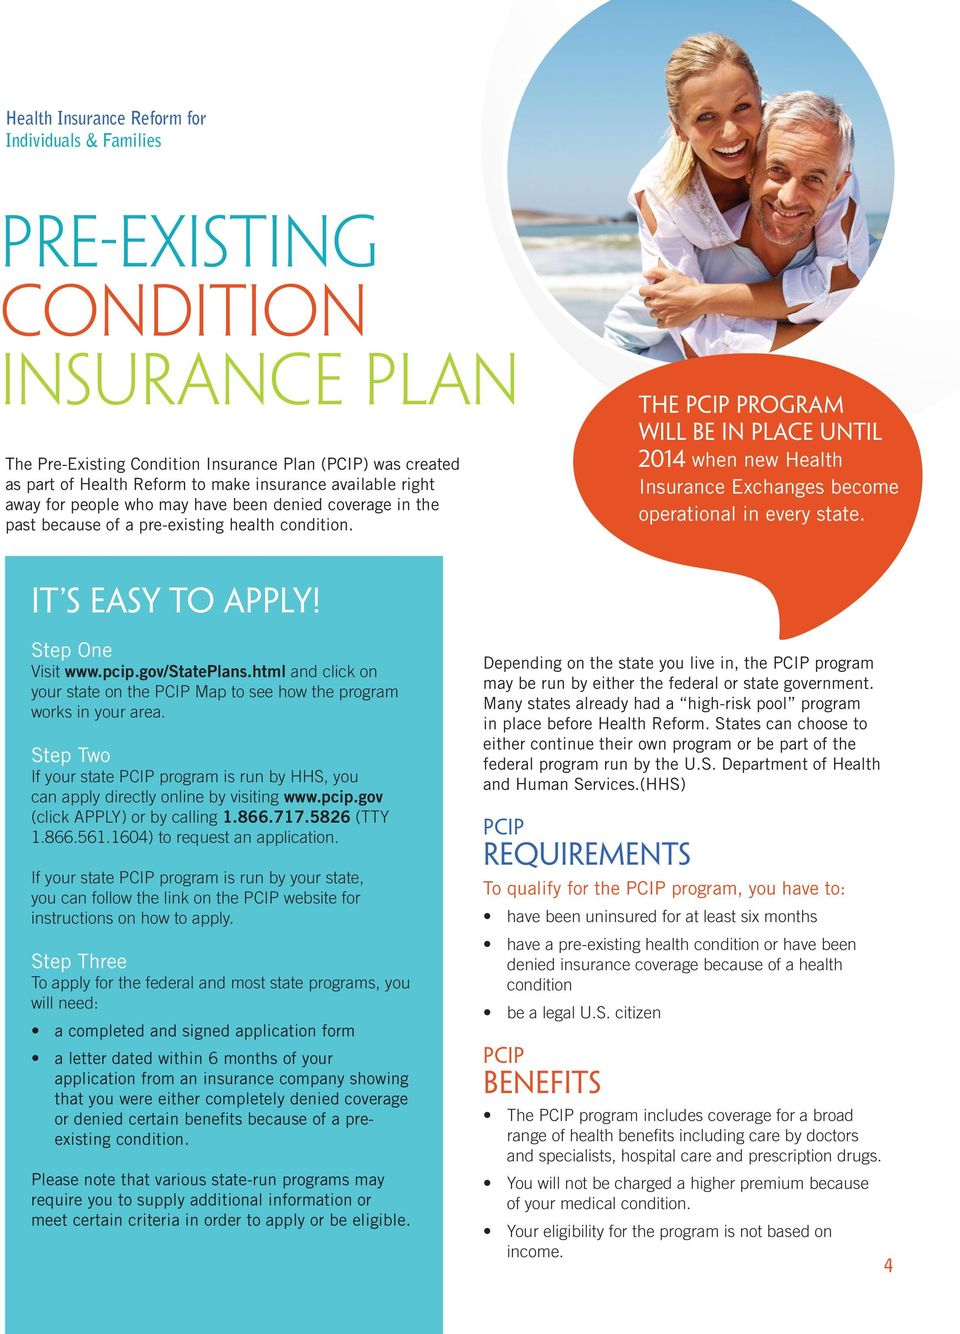 Step One Visit www.pcip.gov/stateplans.html and click on your state on the PCIP Map to see how the program works in your area.